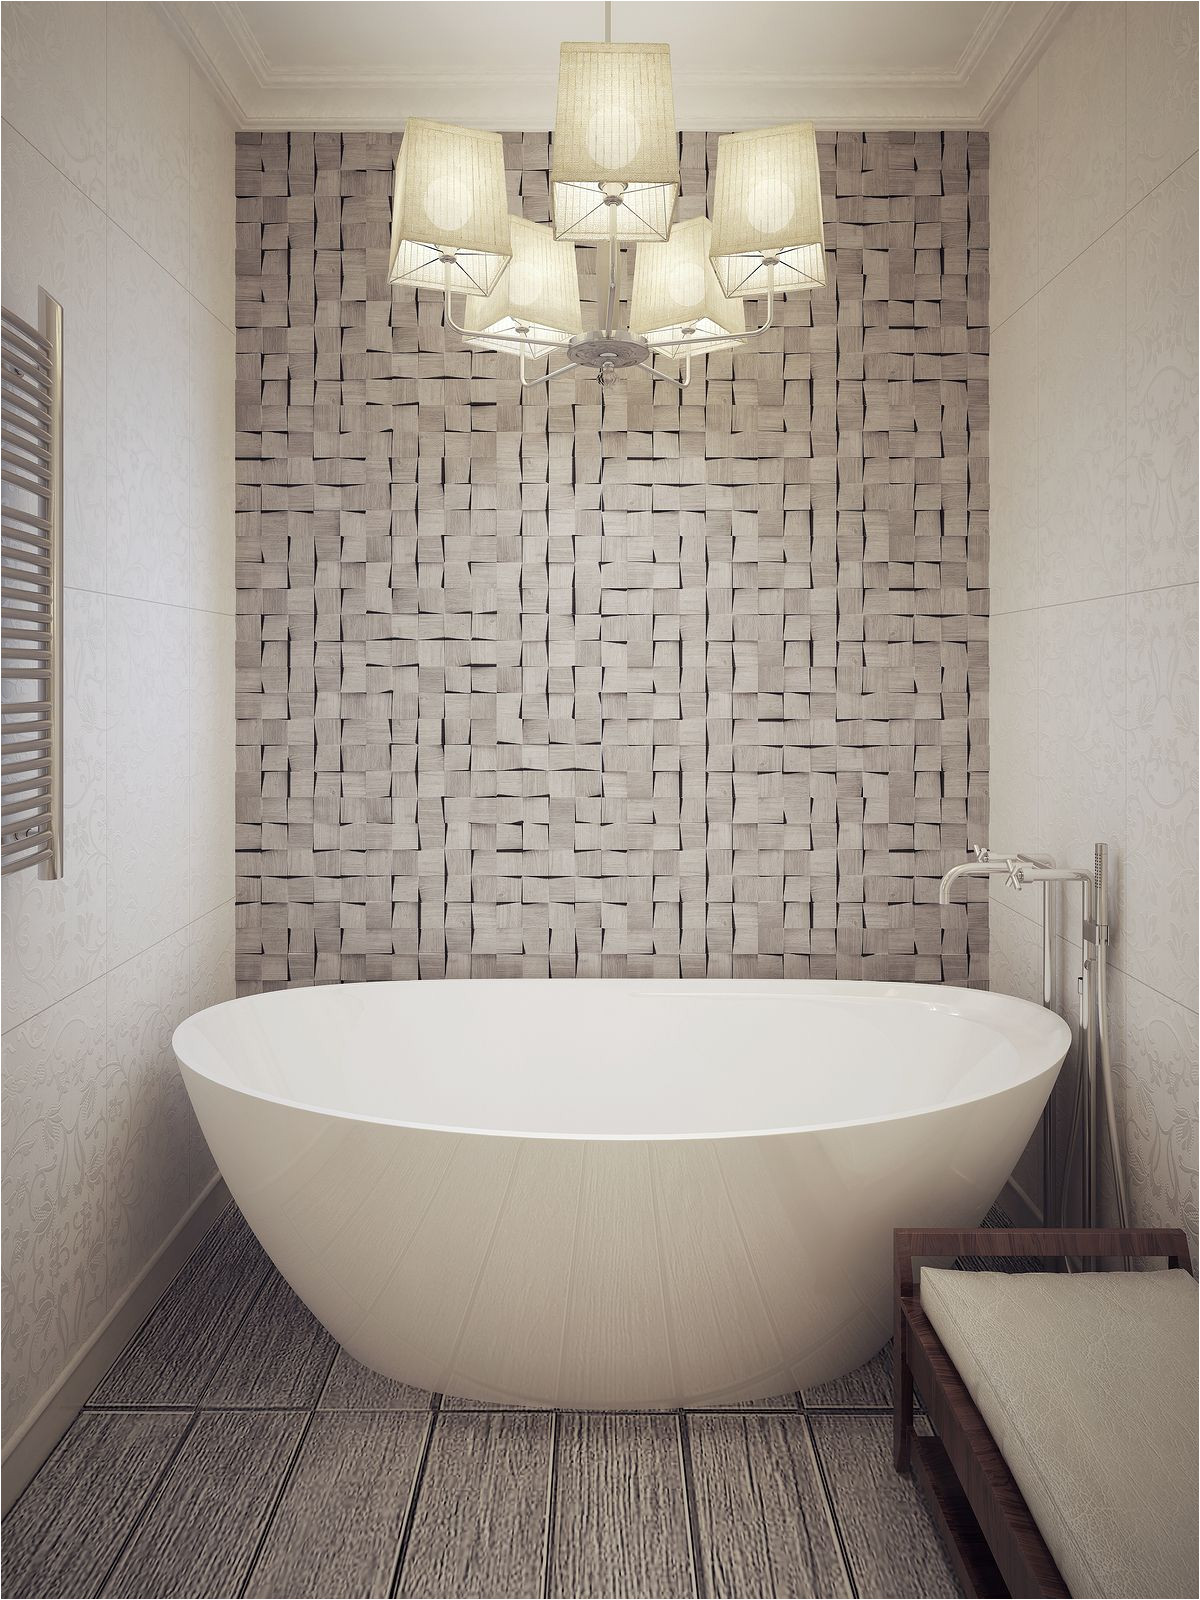 Can You Put A Clawfoot Tub In A Small Bathroom How to Accessorize Around Your Freestanding Tub Bathrooms Pinte